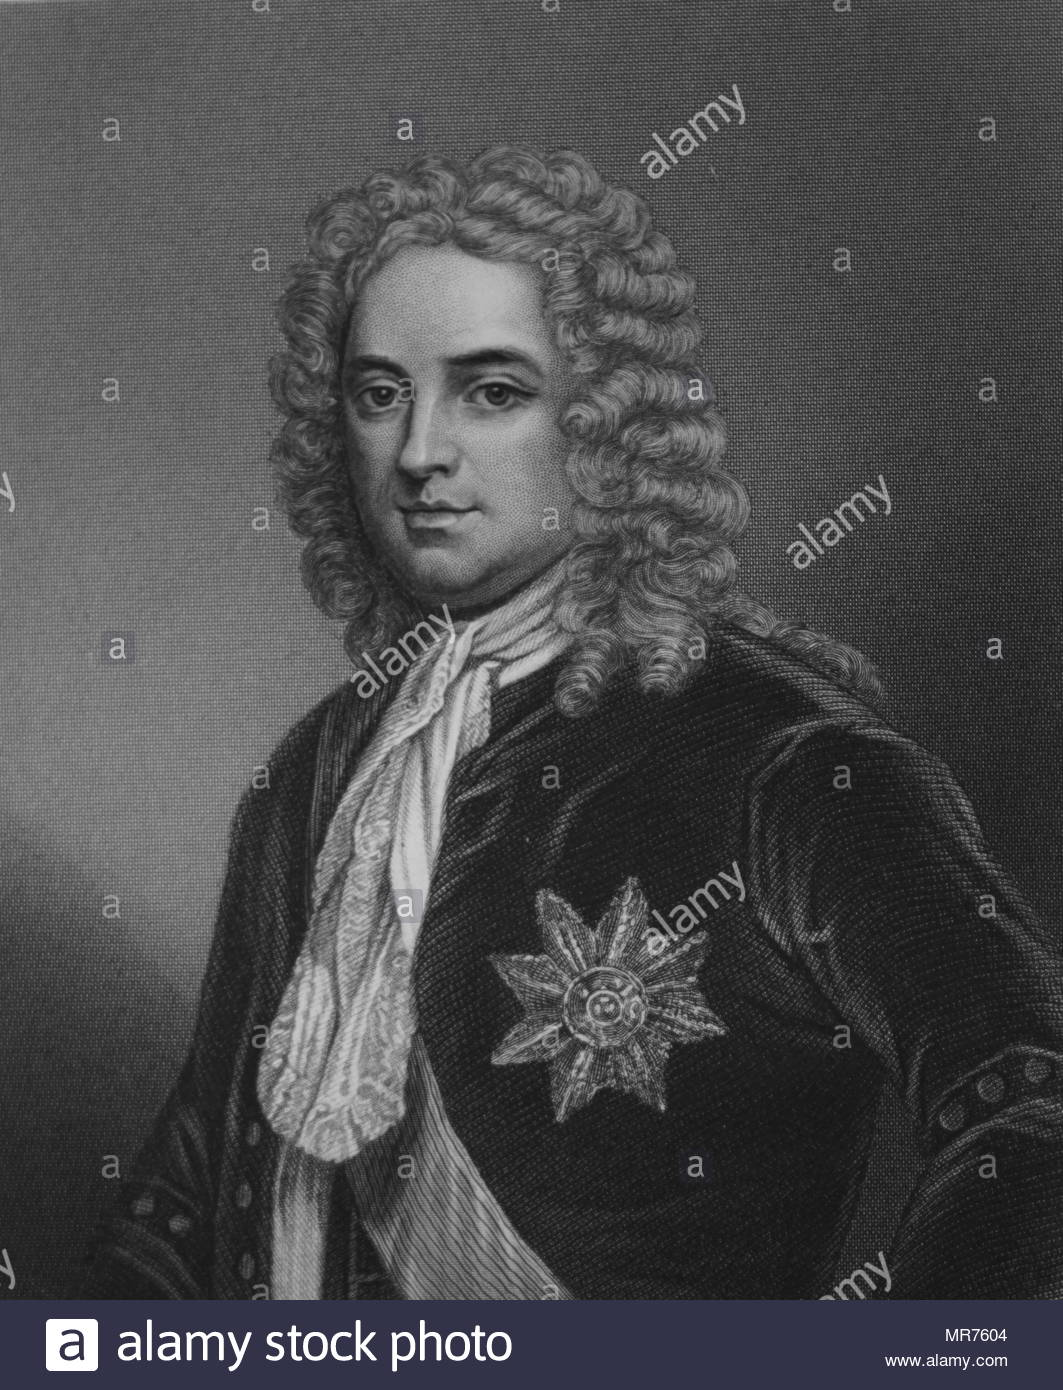 Robert Walpole, (1676 –  1745), British statesman who is generally regarded as the de facto first Prime Minister of Great Britain. holds the record as the longest-serving Prime Minister in British history. - Stock Image